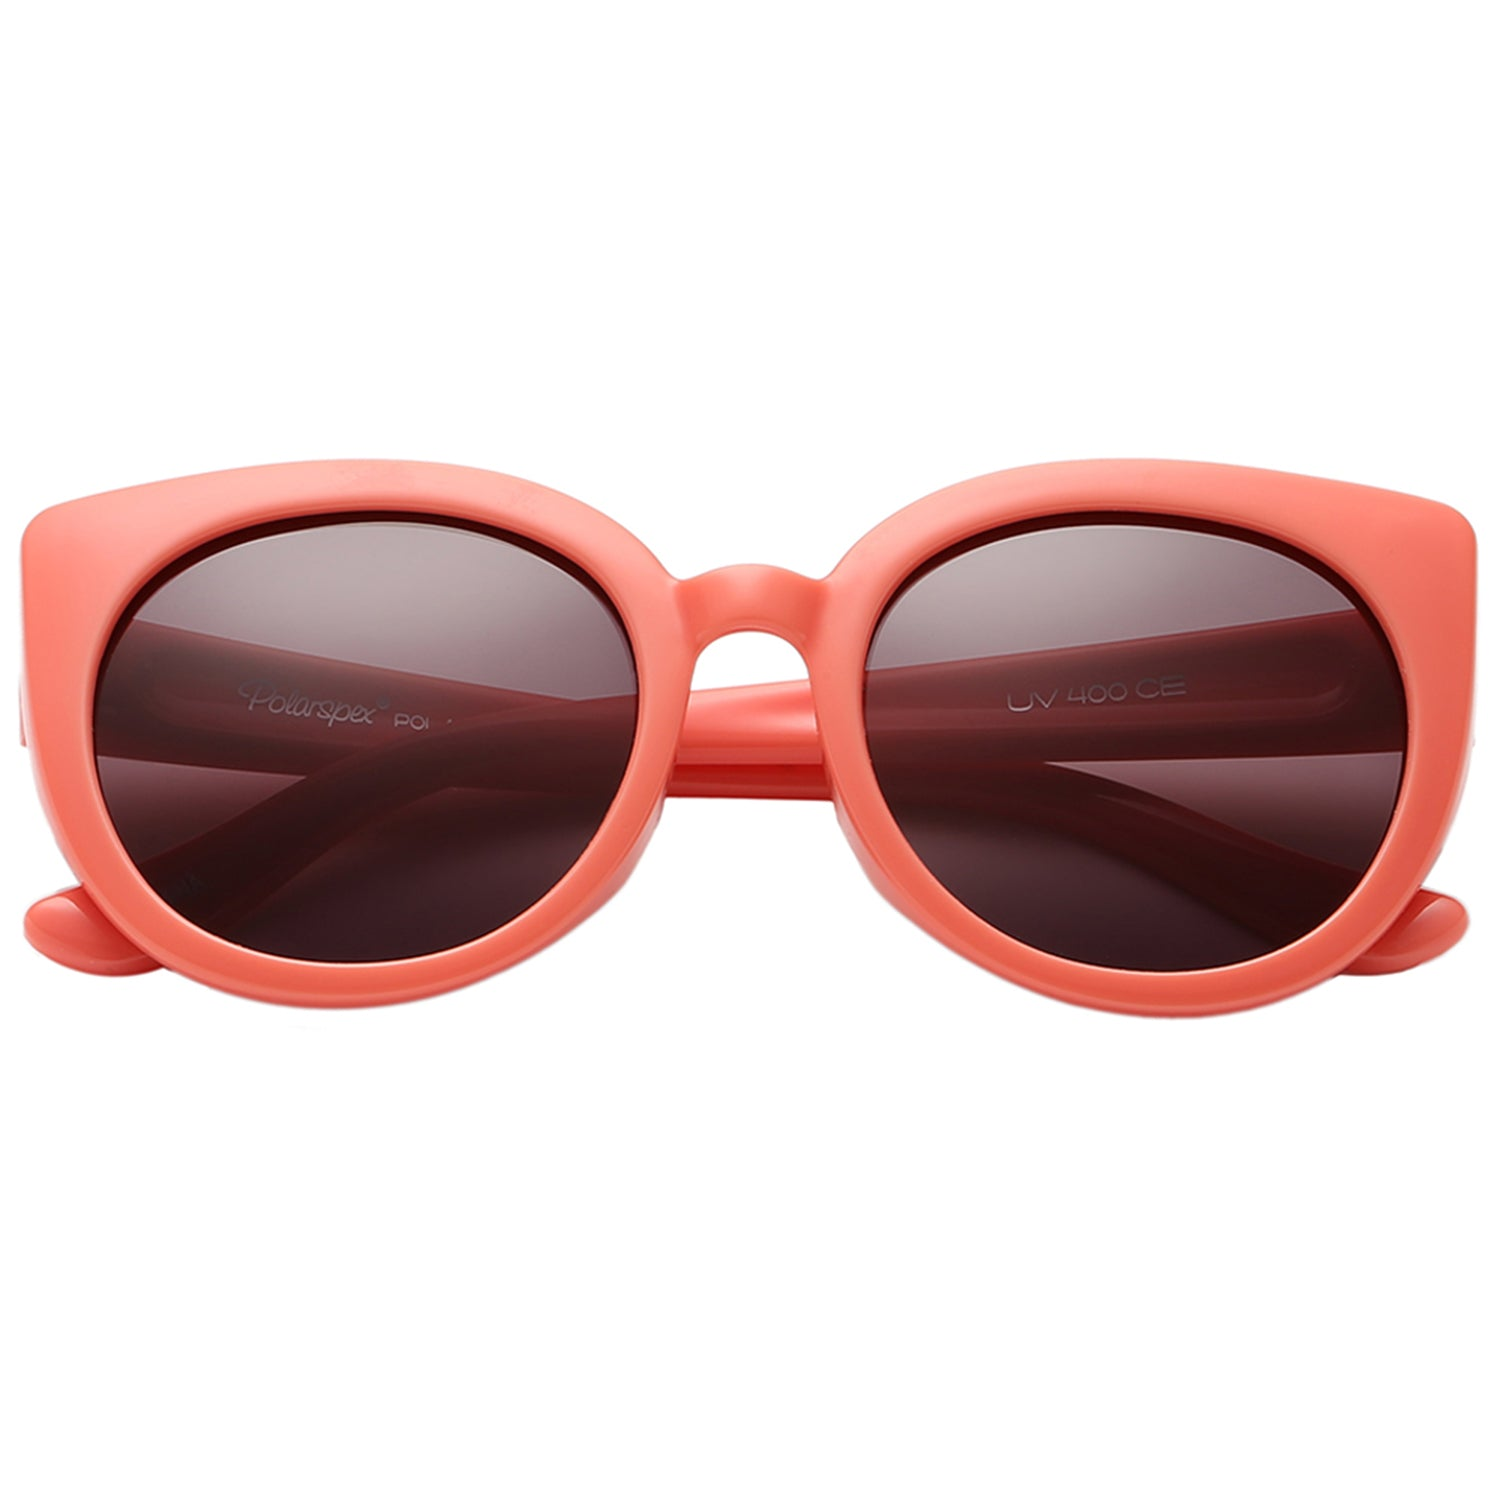 Polarspex Polarized Elastic Cateyes Style (BPA Free) Kids Sunglasses with Ocean Coral Frames and Polarized Ash Smoke Lenses for Girls (Ages 2 - 8)